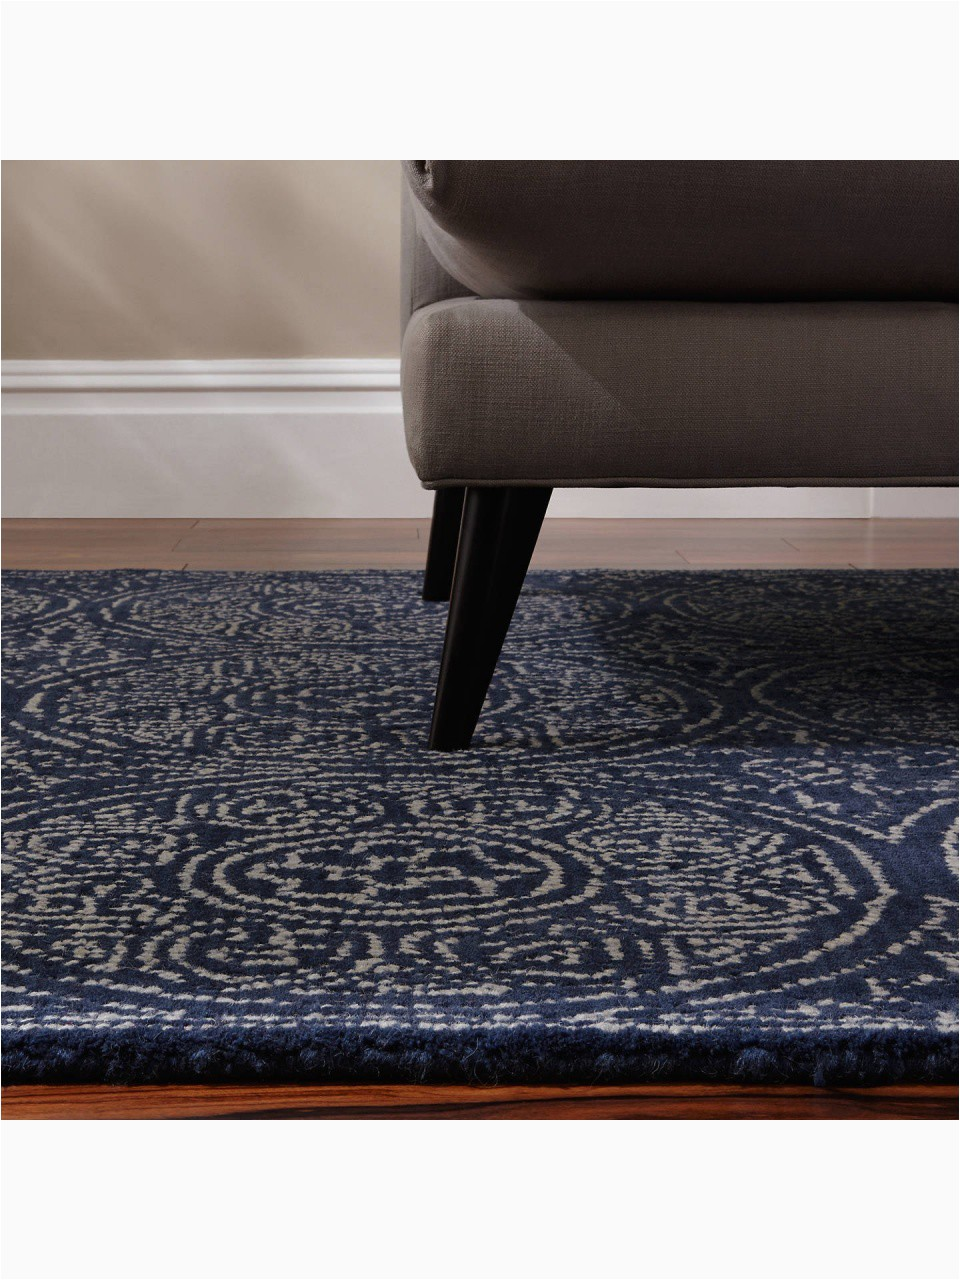 bed bath and beyond bathroom rugs john lewis and partners cadiz rug blue l120 x w180cm from bed bath and beyond bathroom rugs